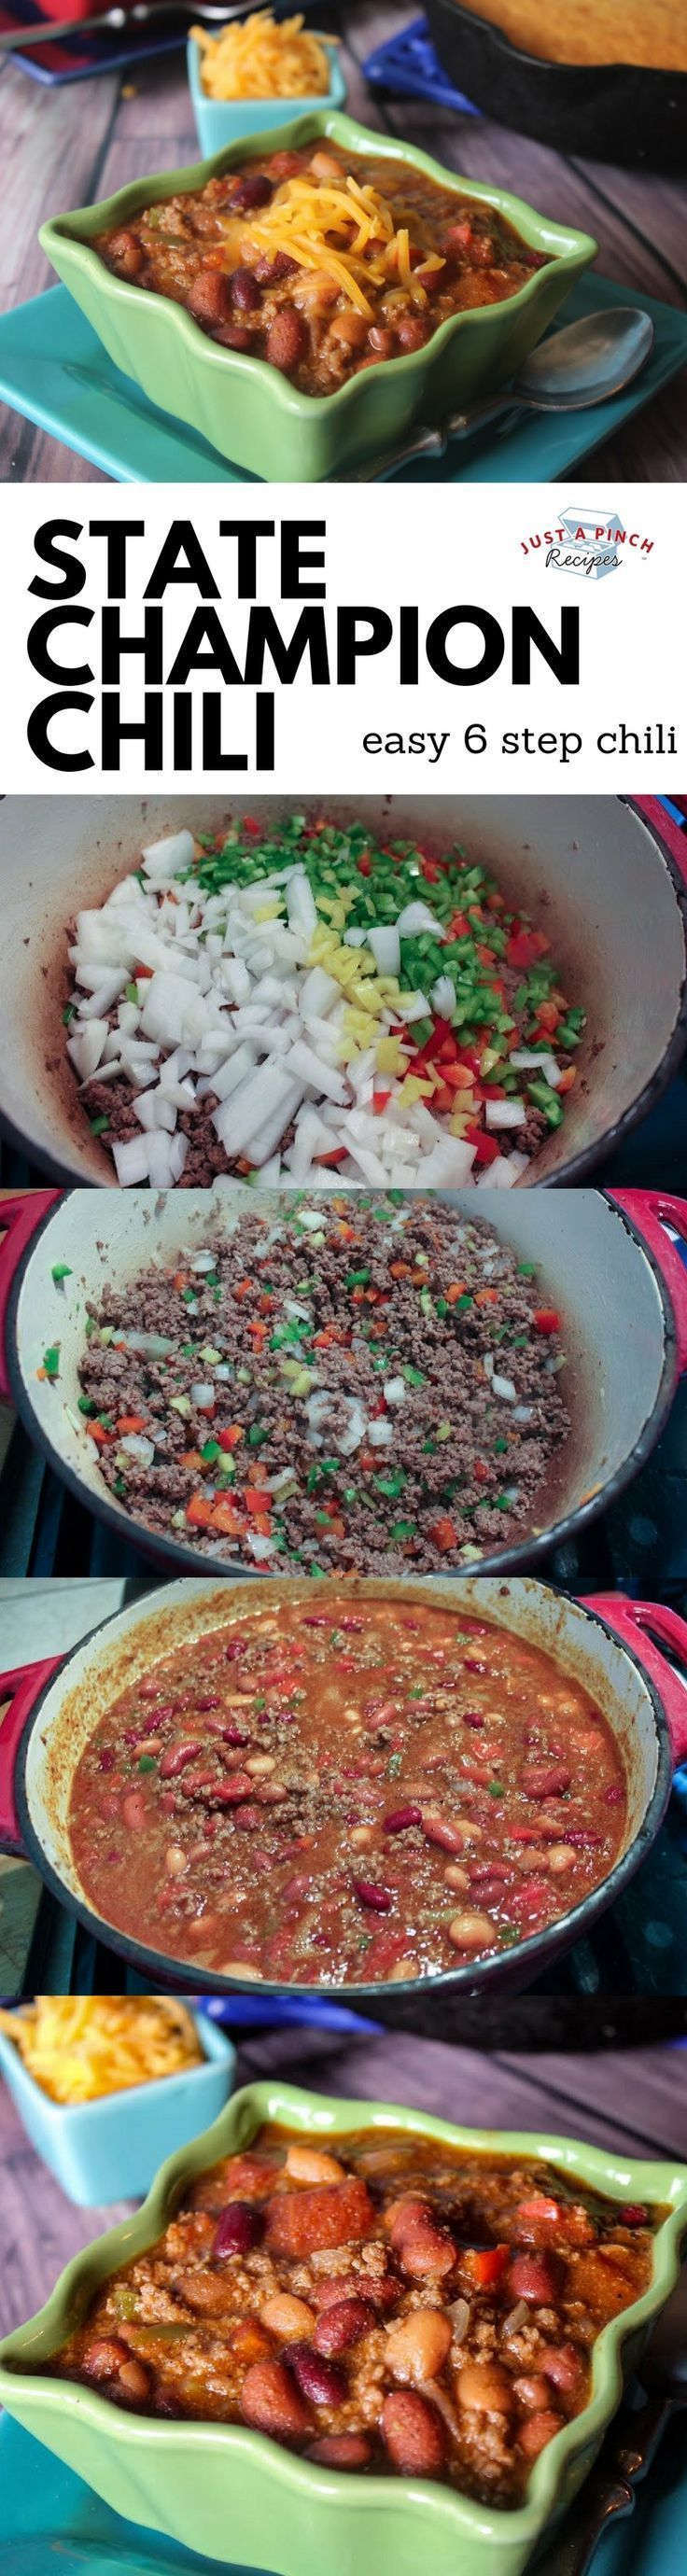 Easy 6 step chili that is hearty and delicious! The best chili recipe ever! #easyrecipe #easydinner #chili #comfortfood